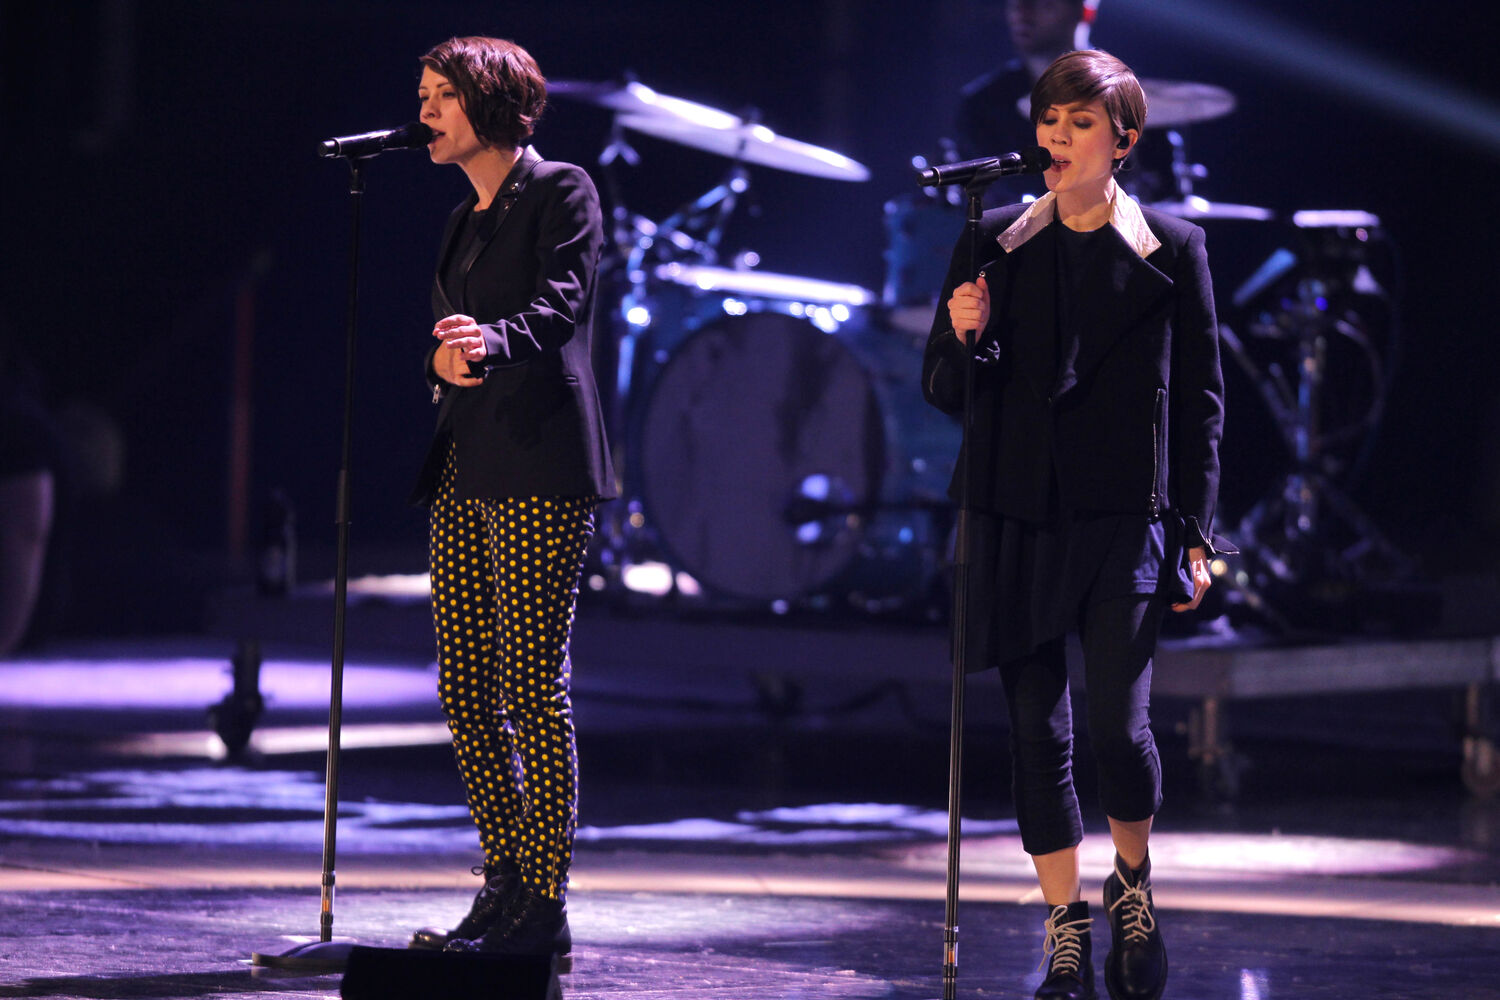 Tegan and Sara rehearse at the MTS Centre Friday prior to their scheduled Juno performance. (Boris Minkevich / Winnipeg Free Press)